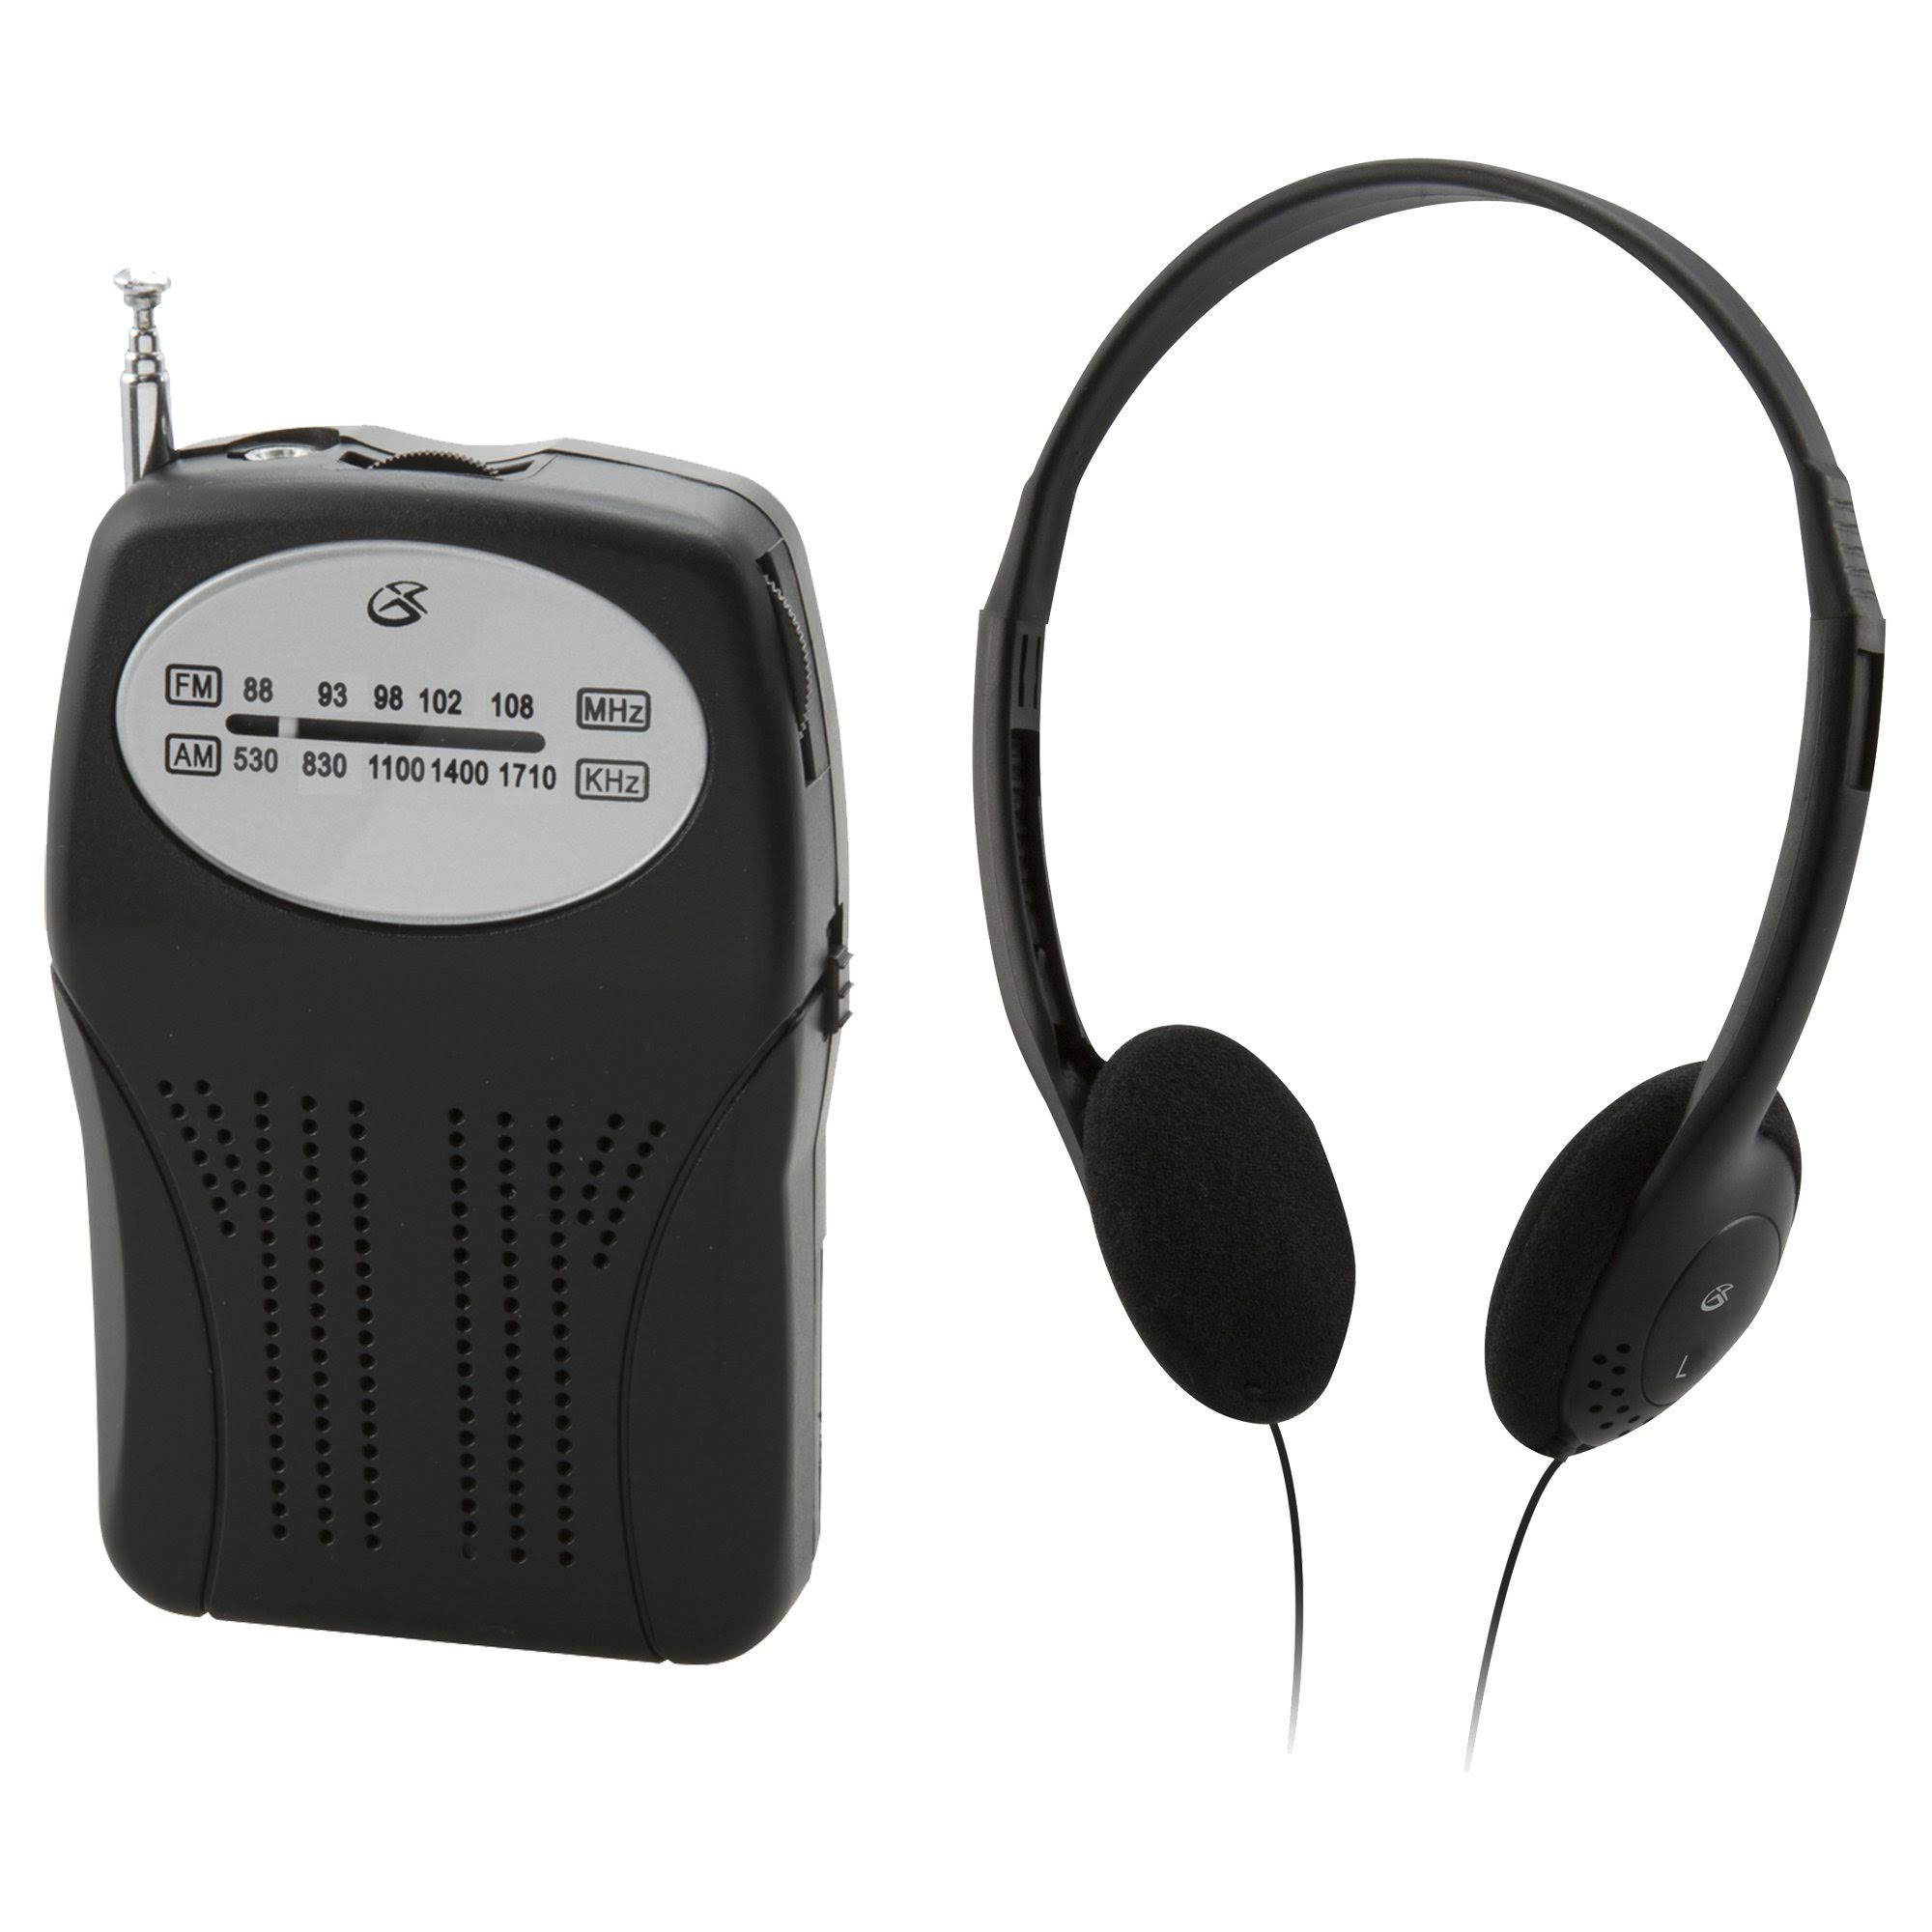 GPX GPXR116B Compact Portable AM FM Radio - with Headphones